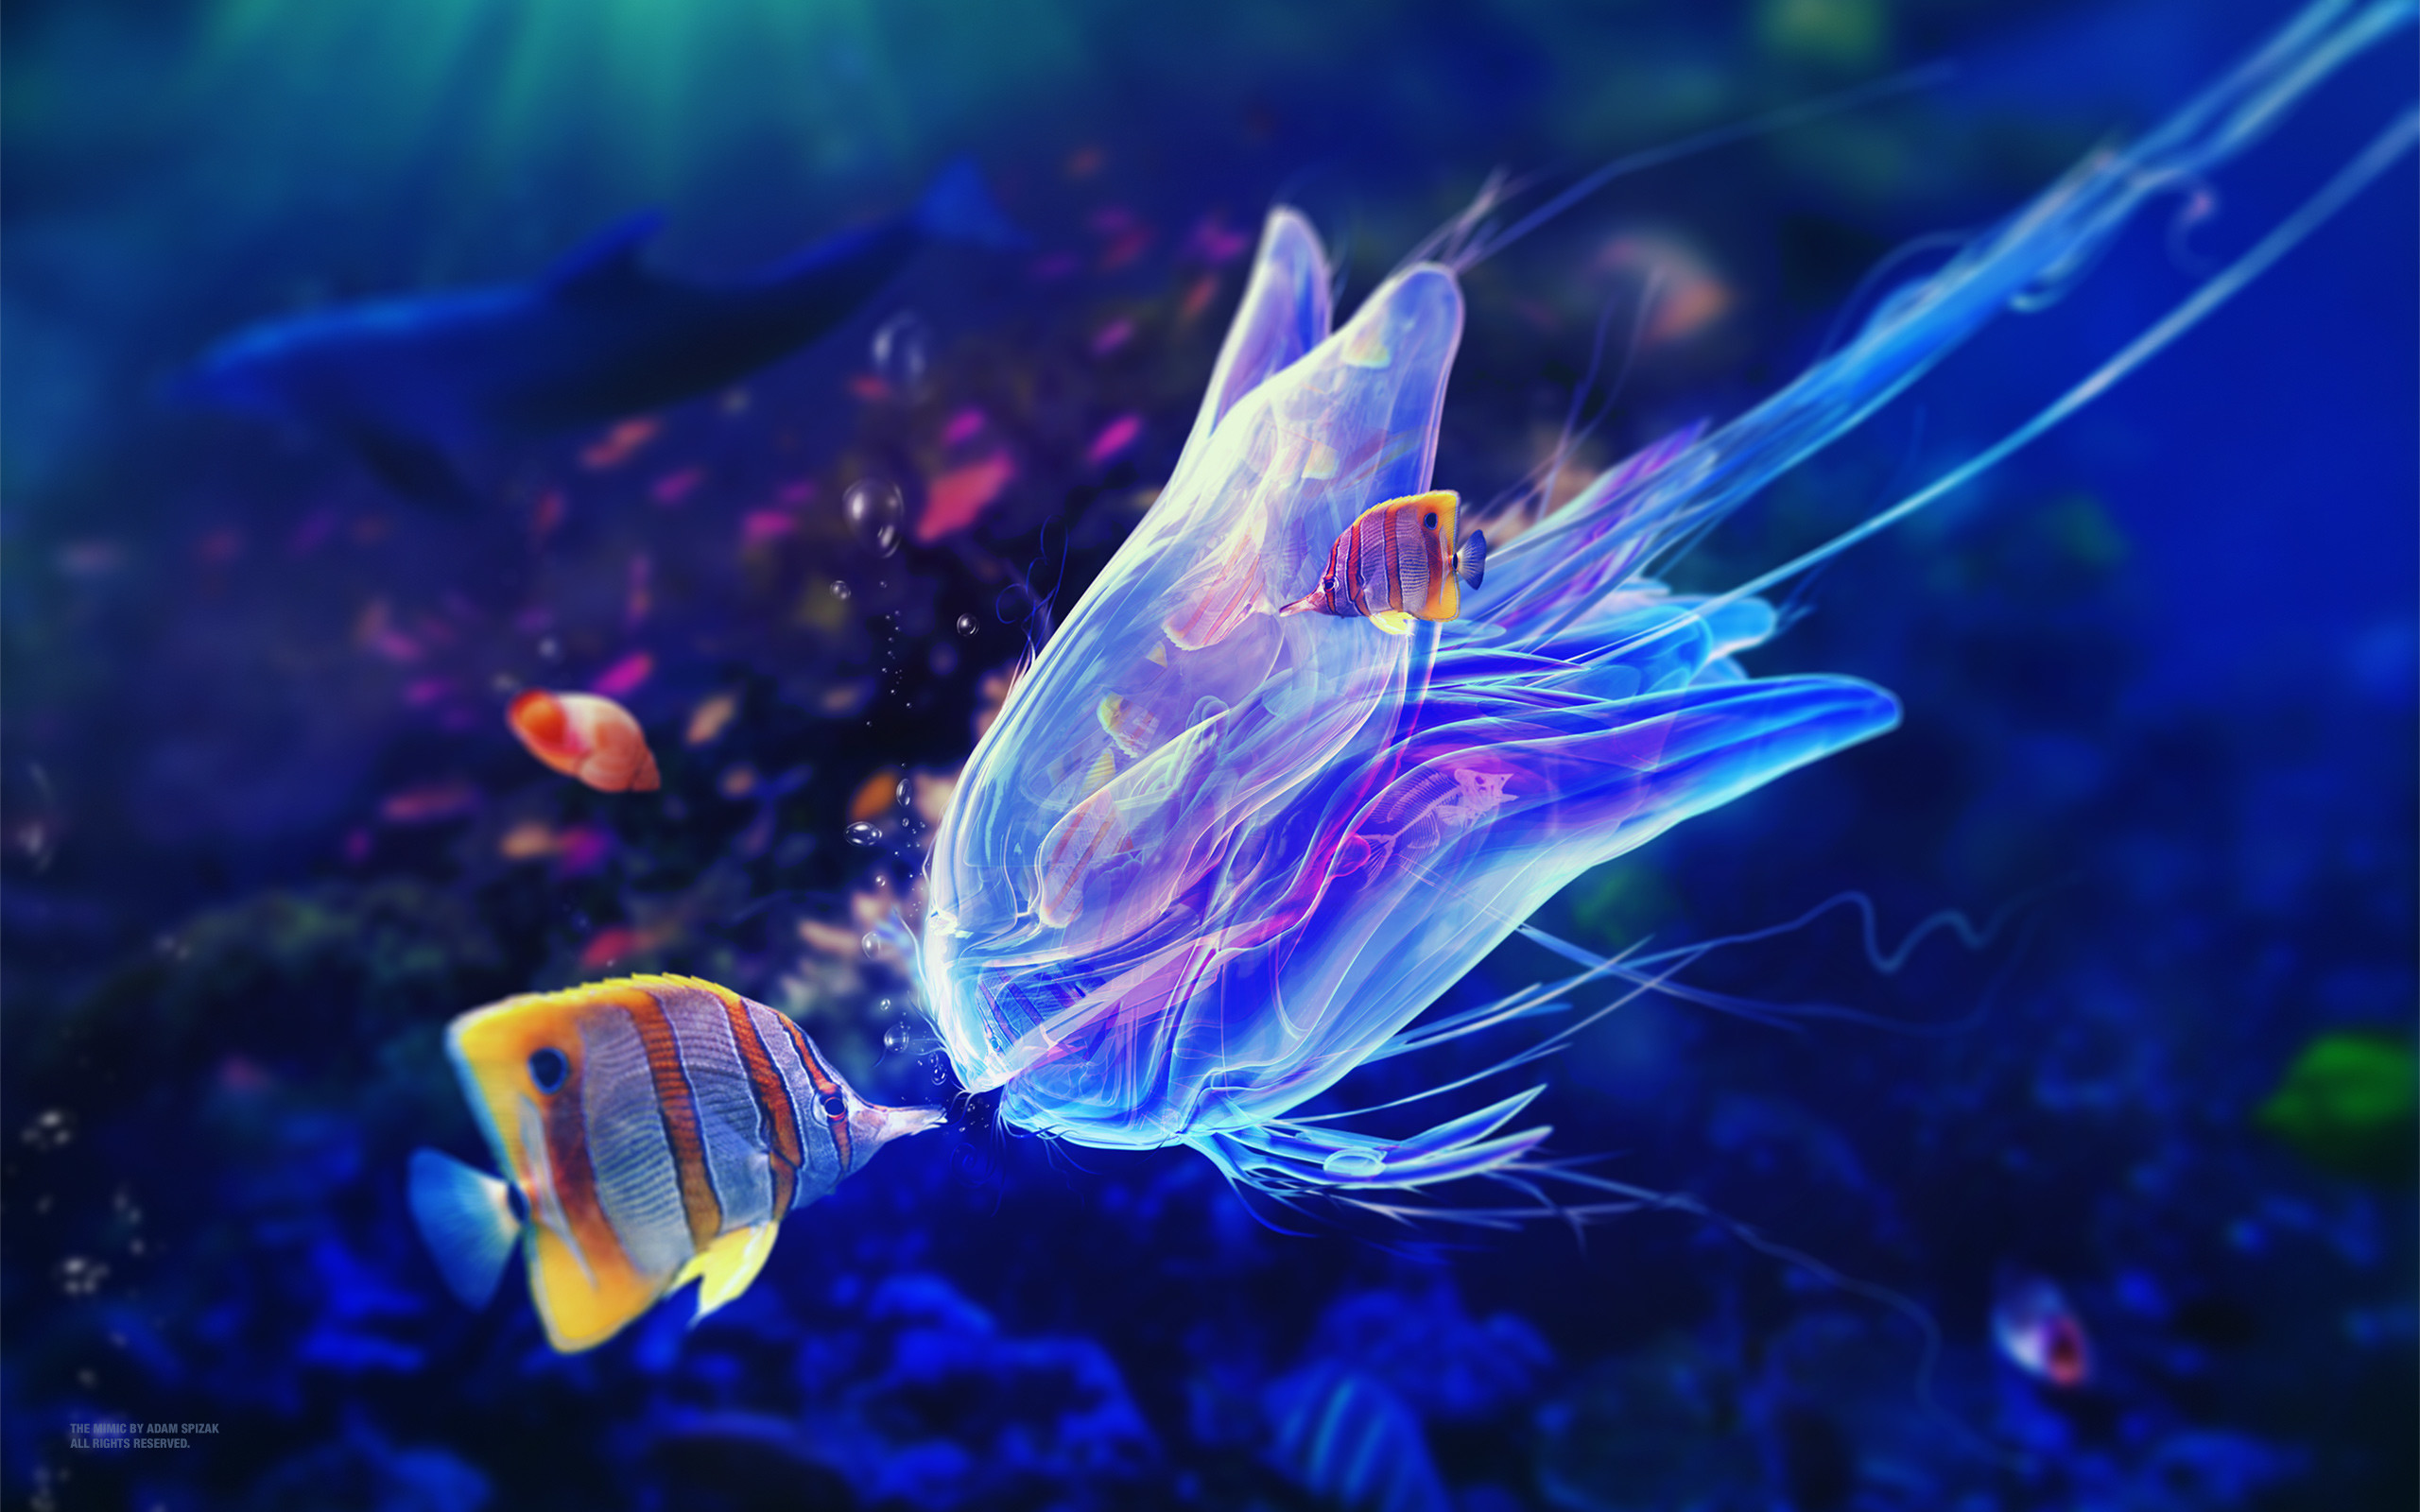 Res: 2560x1600, Author: Adam Spizak. Tags: Underwater Mimic. Description: Download  Underwater Mimic HD wallpaper ...